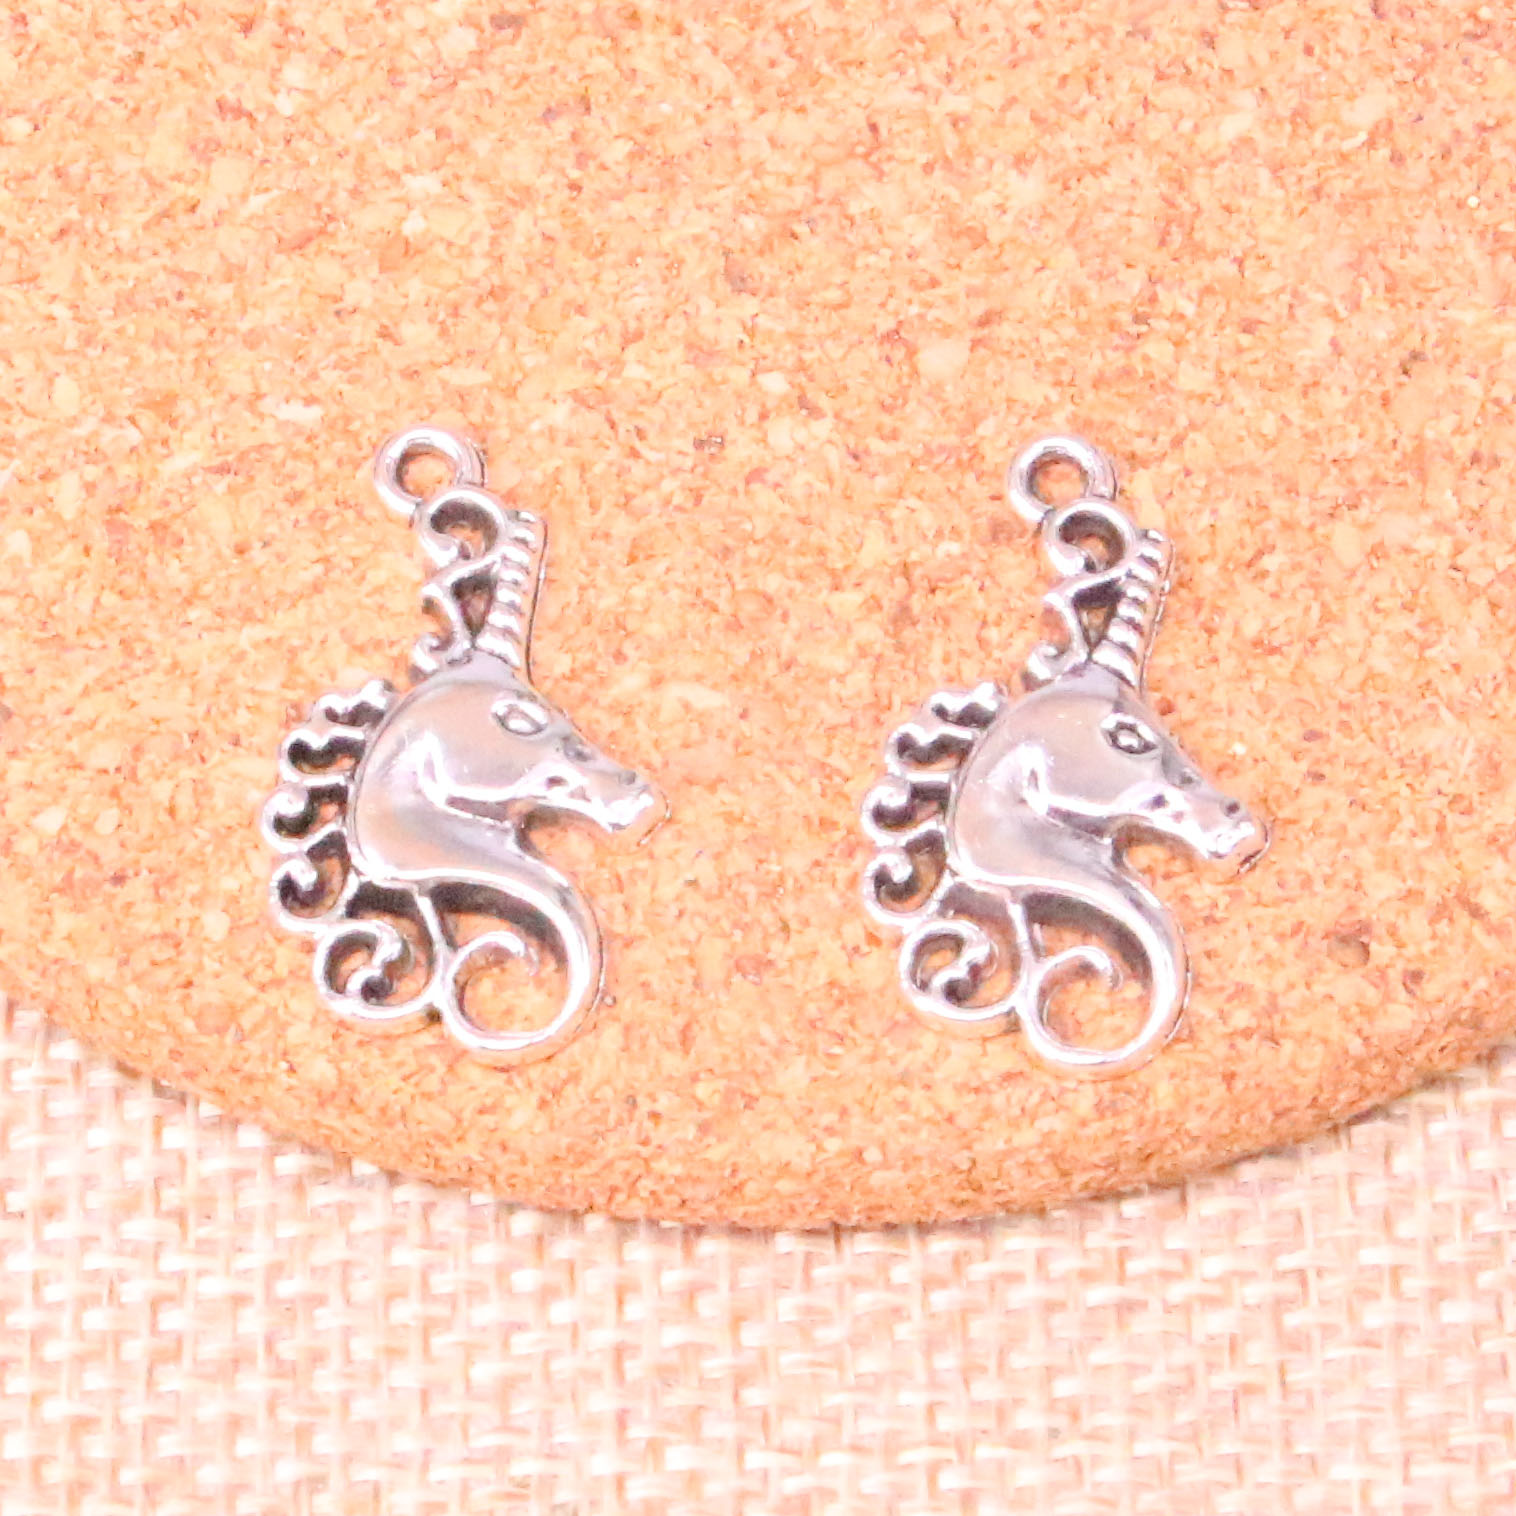 16pcs Unicorn Head Horse Charms Pendants For Jewelry Making Vintage Antique Silver Plated Diy Handmade 26*15mm